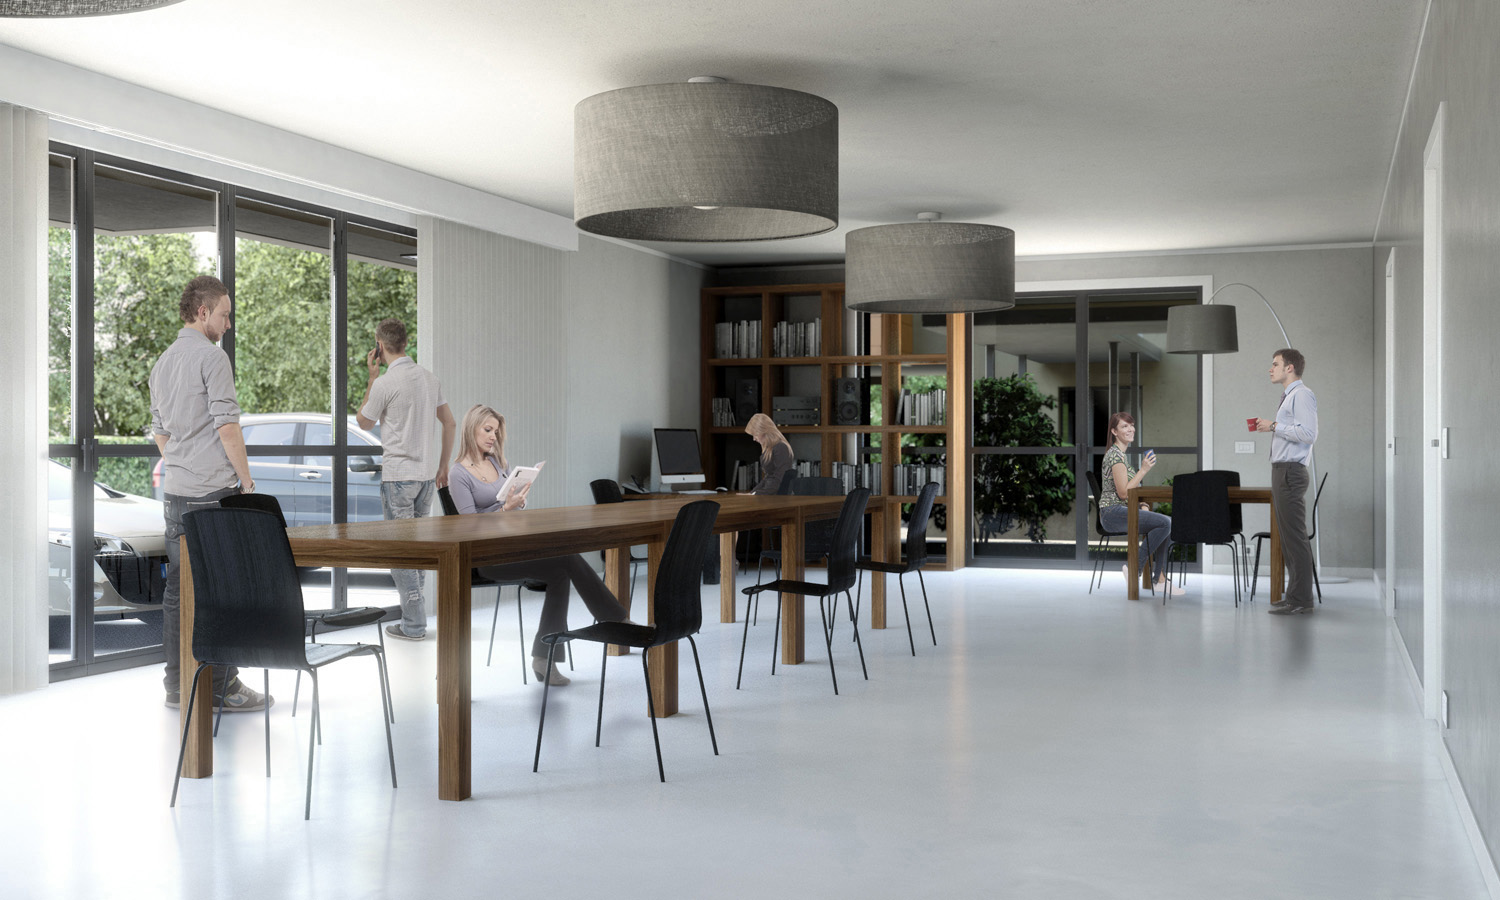 rendering 10 photo © 2018 by GBA Studio srl / Gianluca Brini - Architetto